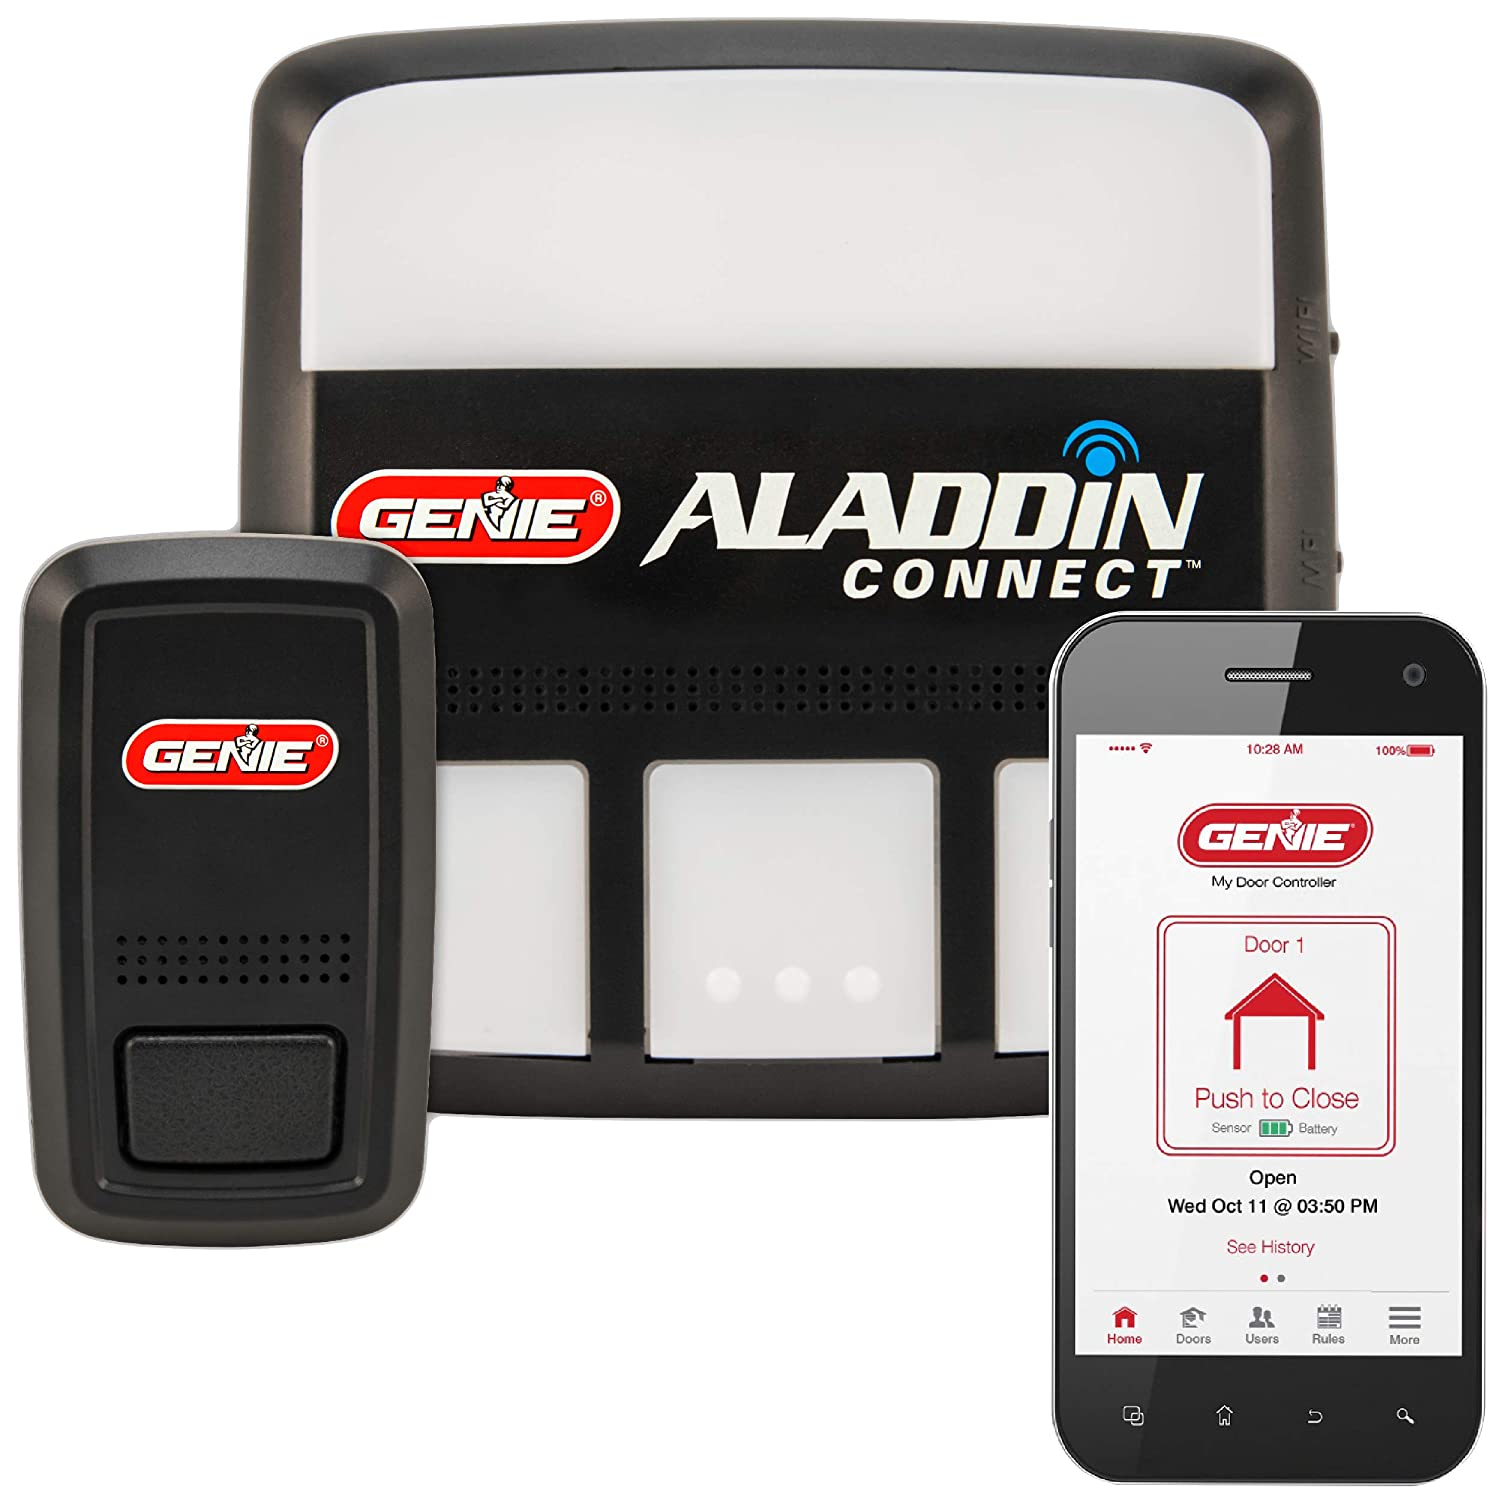 Genie Aladdin Connect Wi-Fi Smart Garage Door Opener Controller